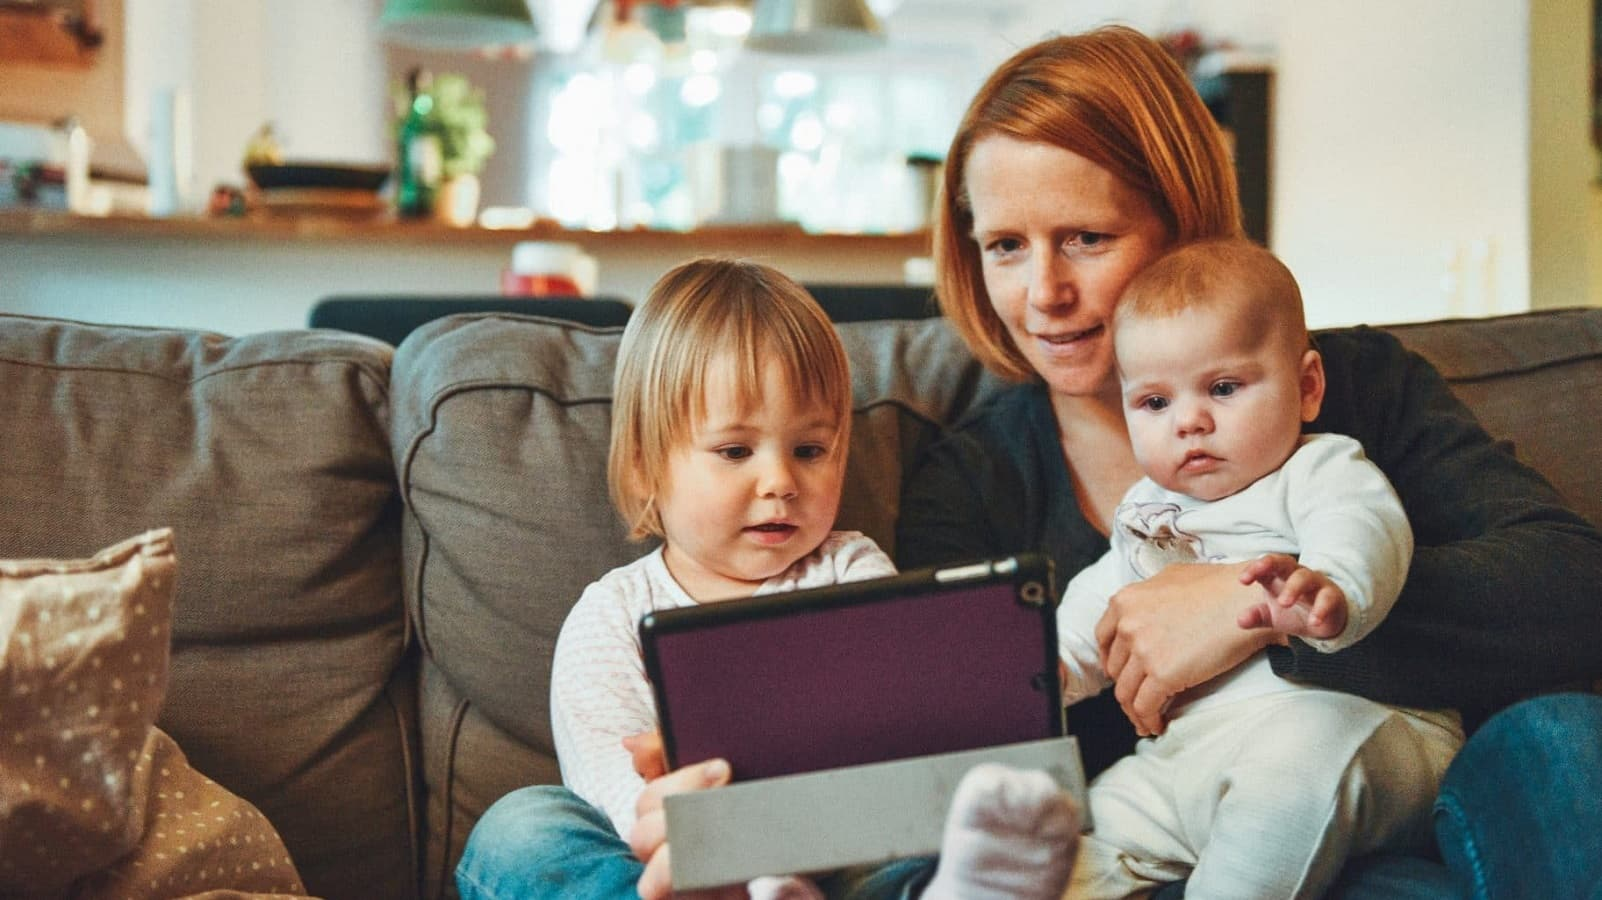 mother looking at a tablet with her children